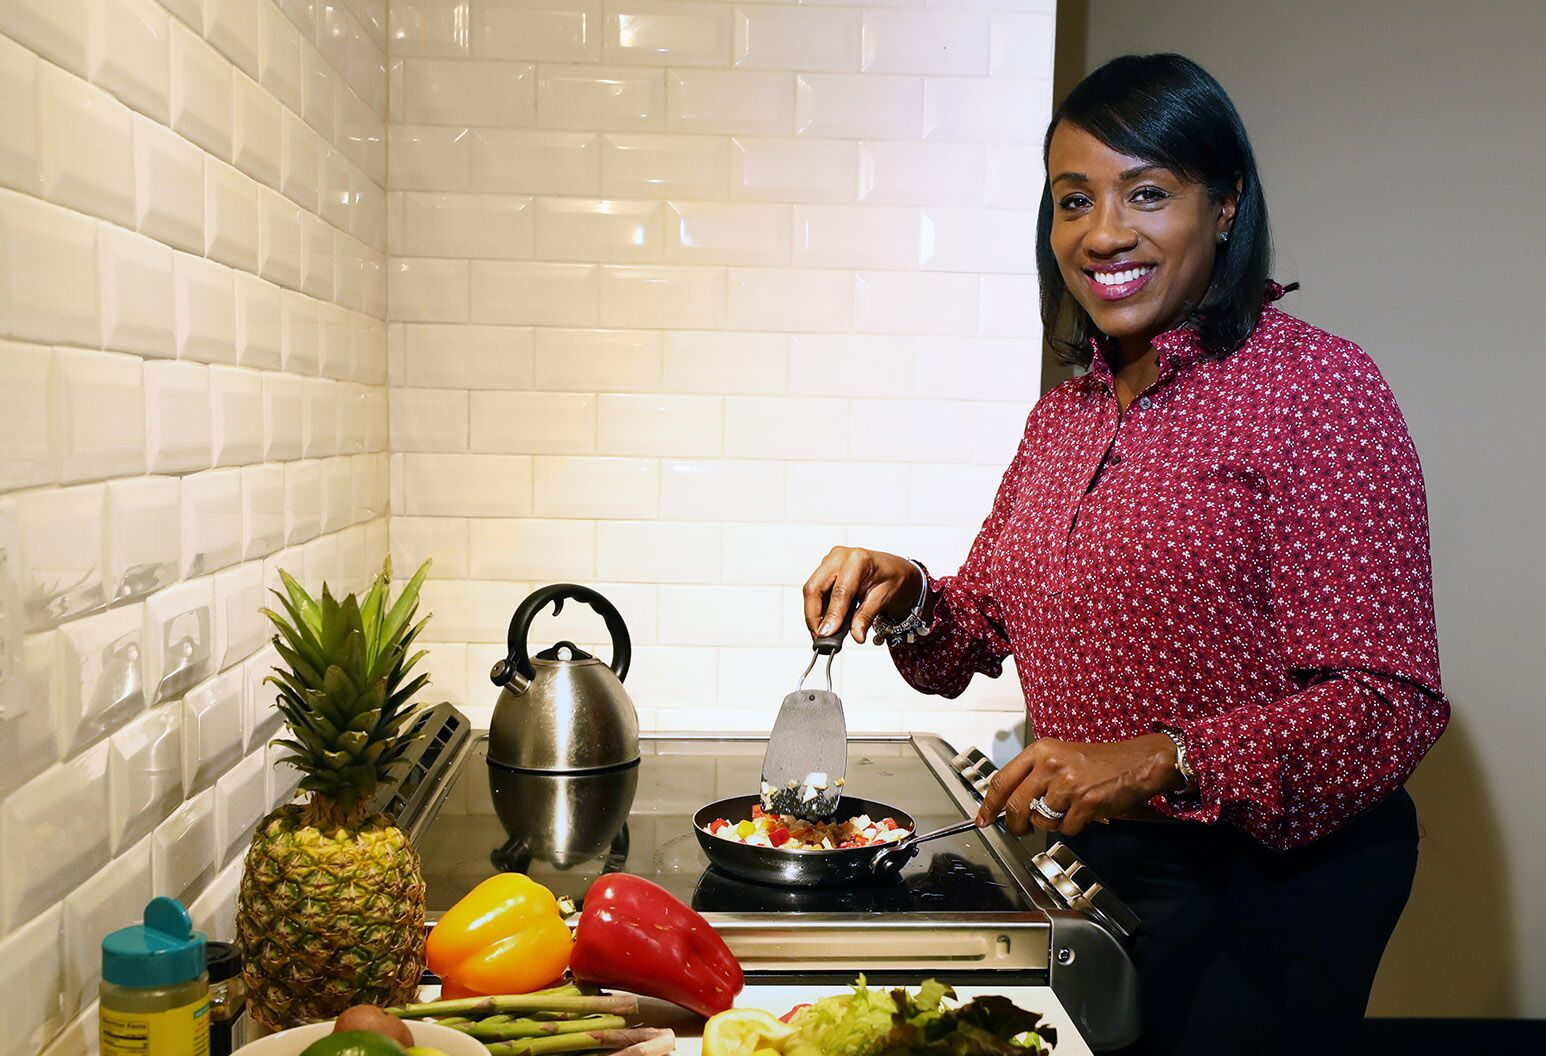 Smiling woman cooks a healthy vegetable stir-fry.